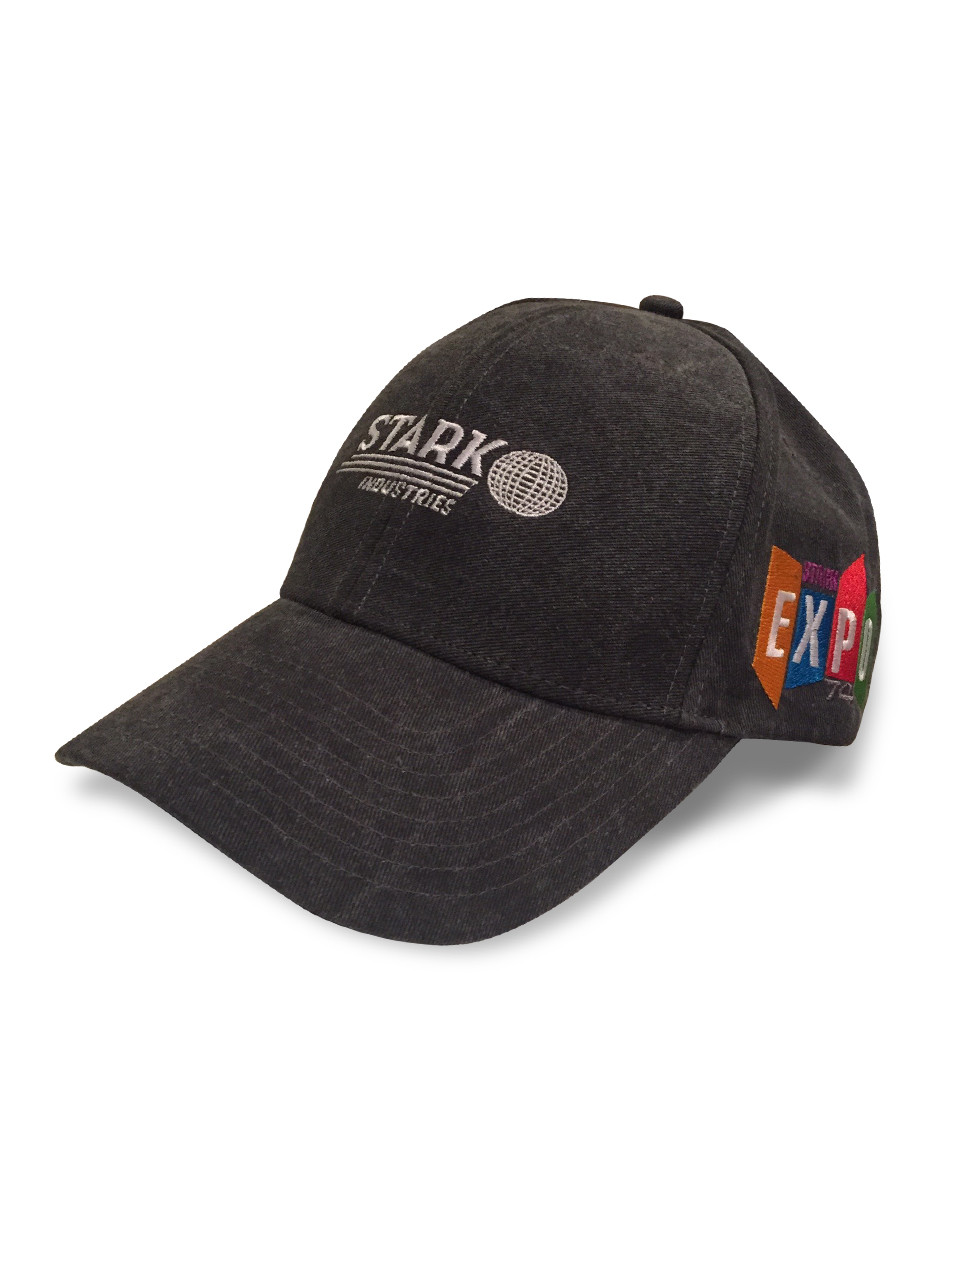 f62aa4cef879d ... coupon for free shipping stark industries stark expo 74 promotional  marvel hat from 2010 sdcc comiccon